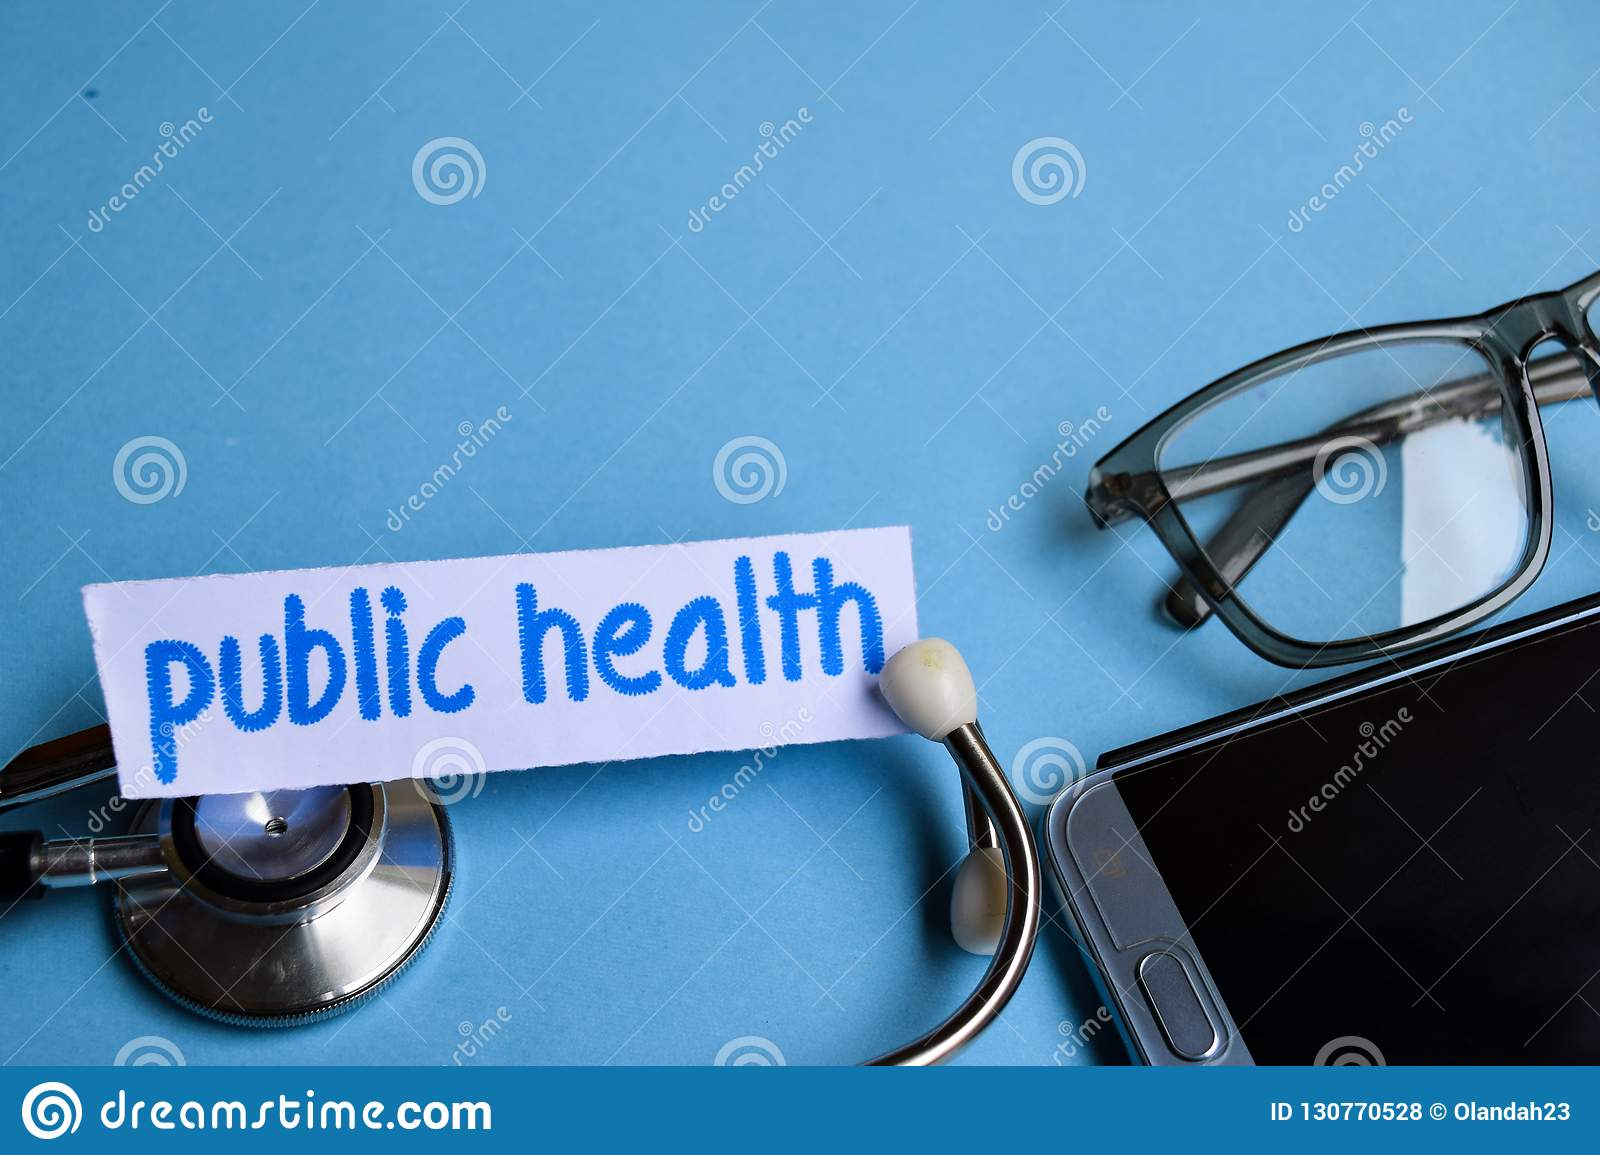 Public health inscription with the view of stethoscope, eyeglasses and smartphone on the blue background